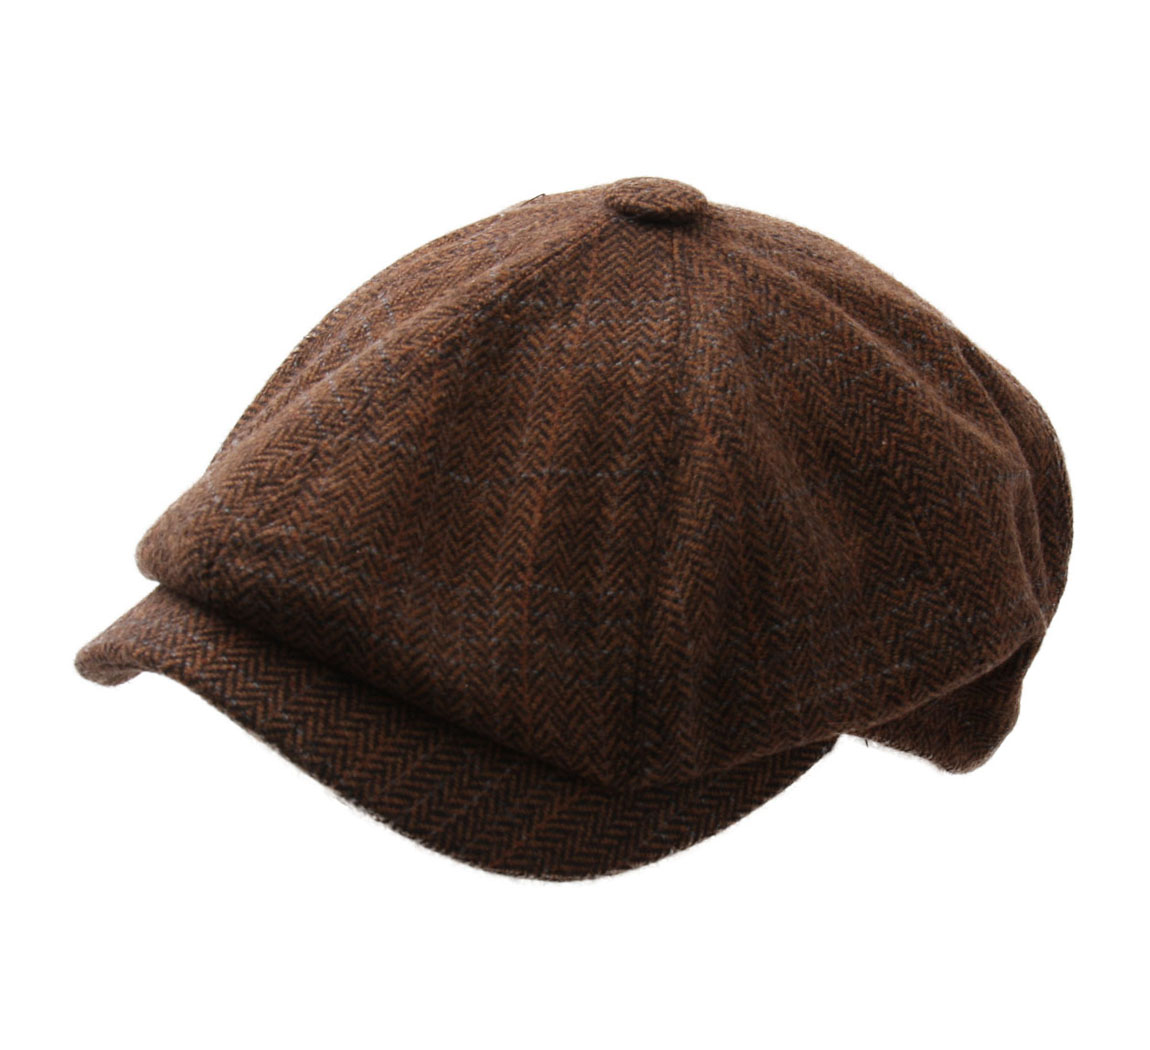 Casquette stylé tendance Hatteras Italie Newsboy Italy